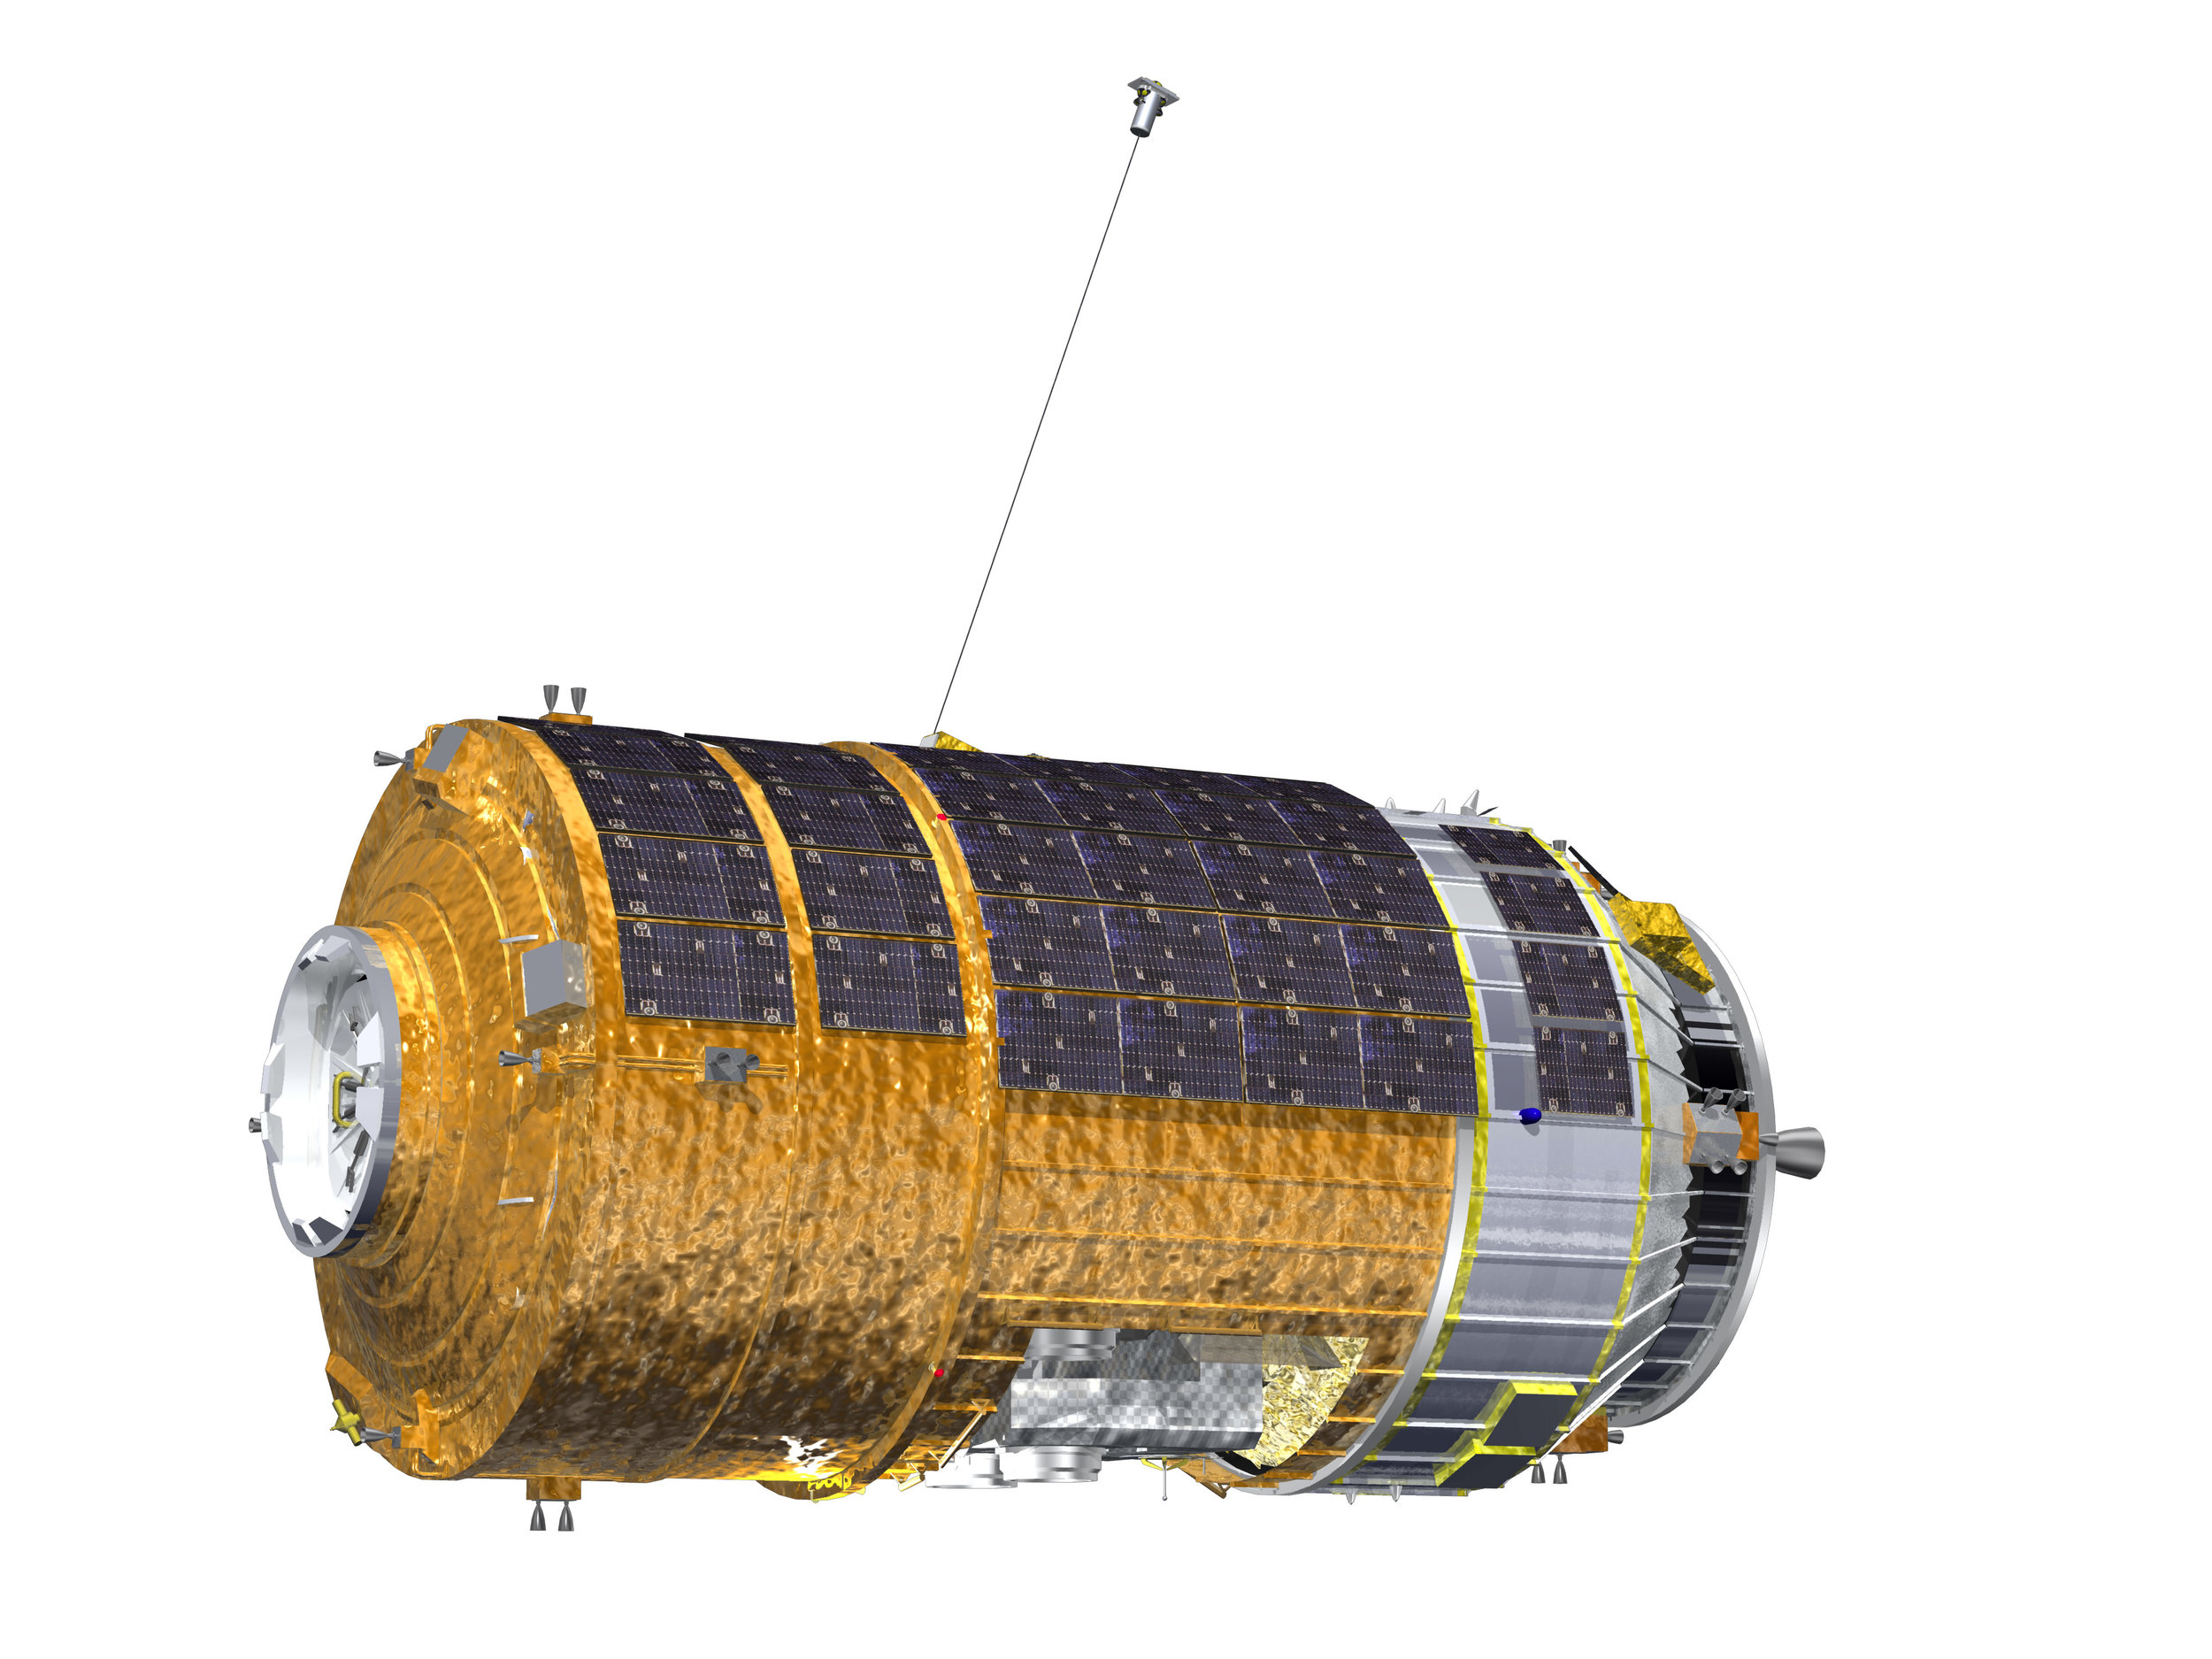 H-II Transfer Vehicle 6 (KOUNOTORI 6) during the Kounotori Integrated Tether Experiment (KITE) (CG Image). Image copyright JAXA, media use.